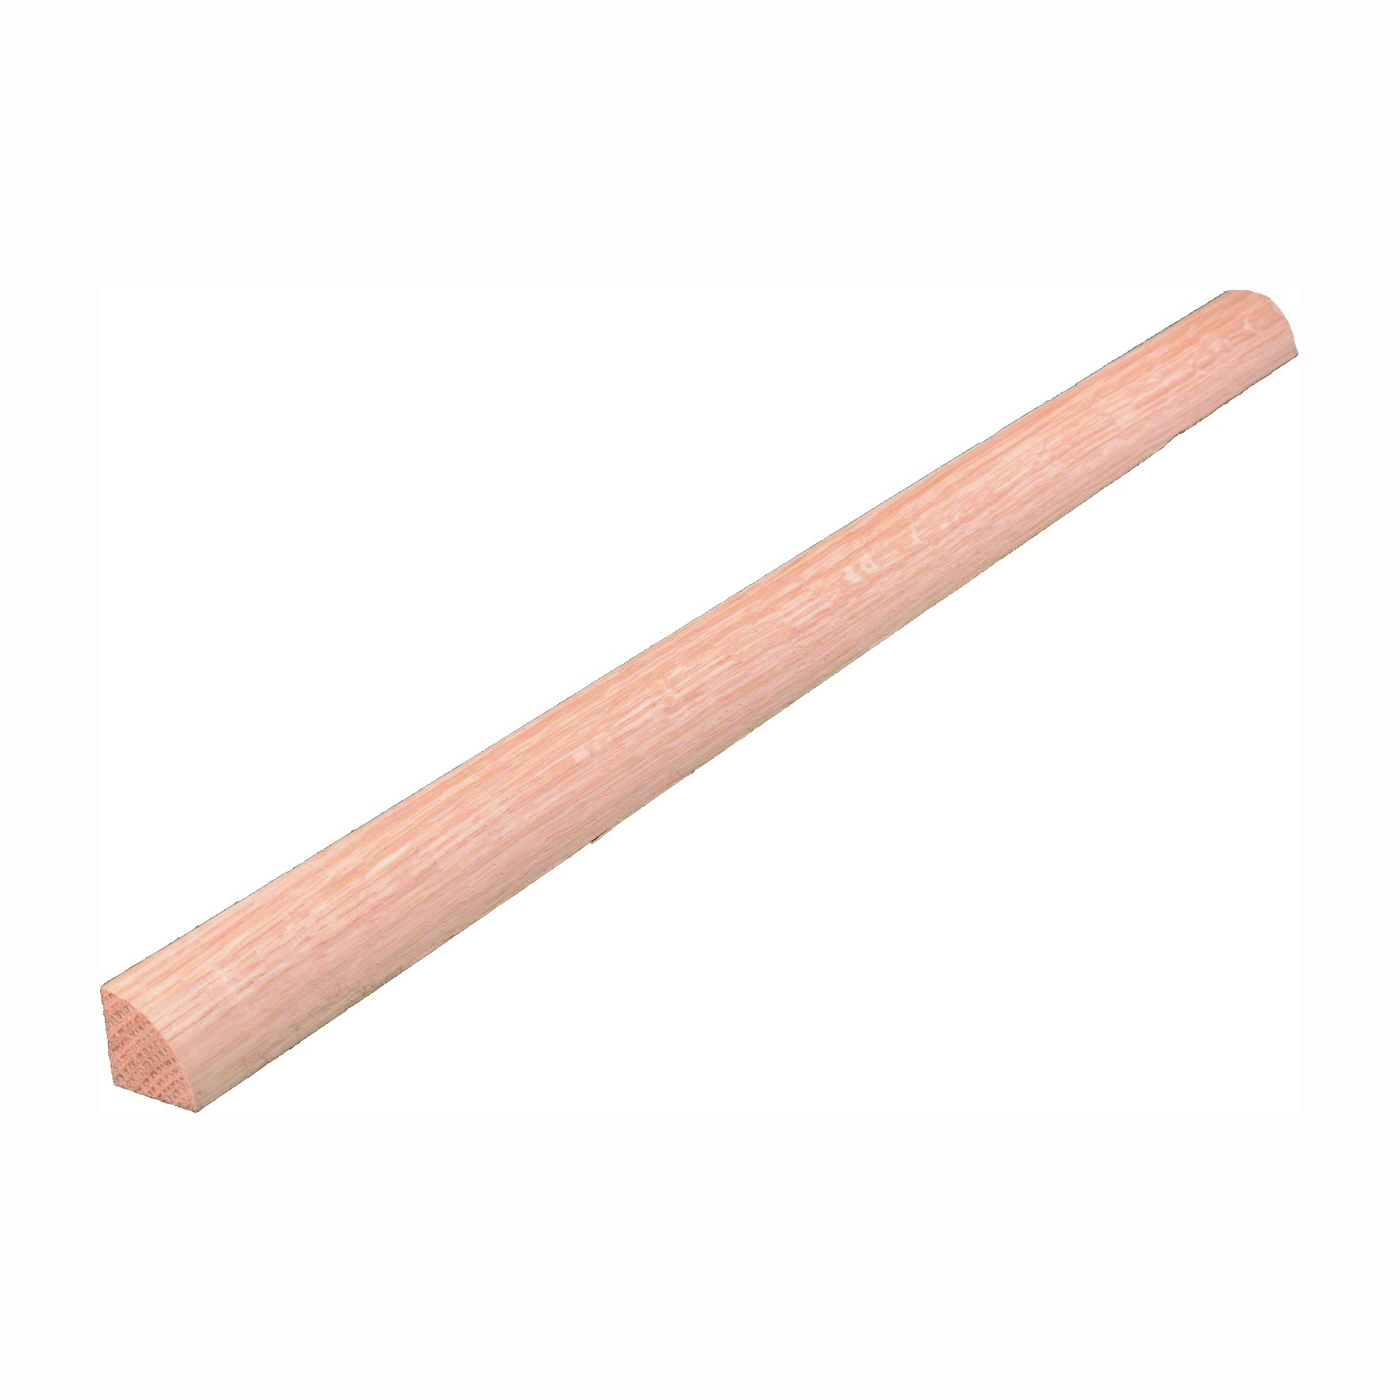 Picture of ALEXANDRIA Moulding 0W105-40096C1 Quarter-Round Molding, 96 in L, 3/4 in W, Red Oak